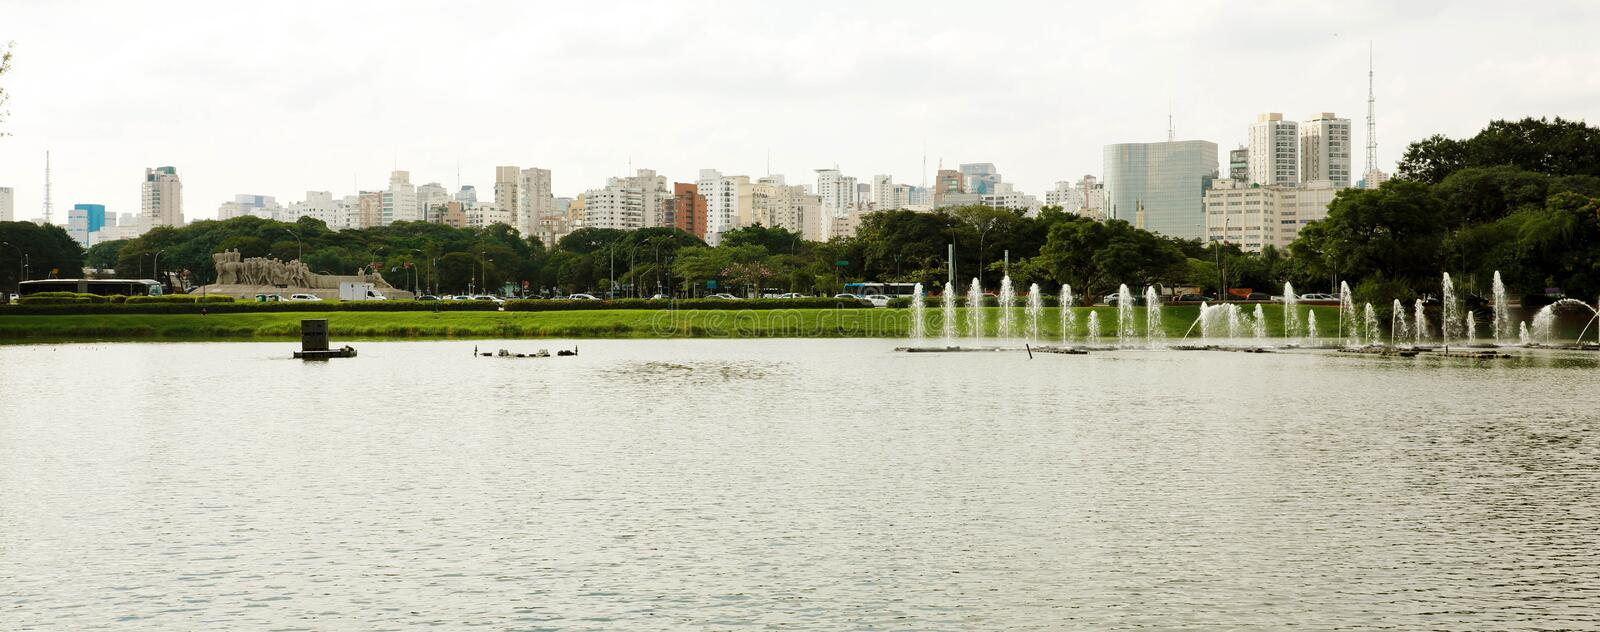 Panoramic banner view of Ibirapuera Park with Sao Paulo cityscape, Brazil royalty free stock photography